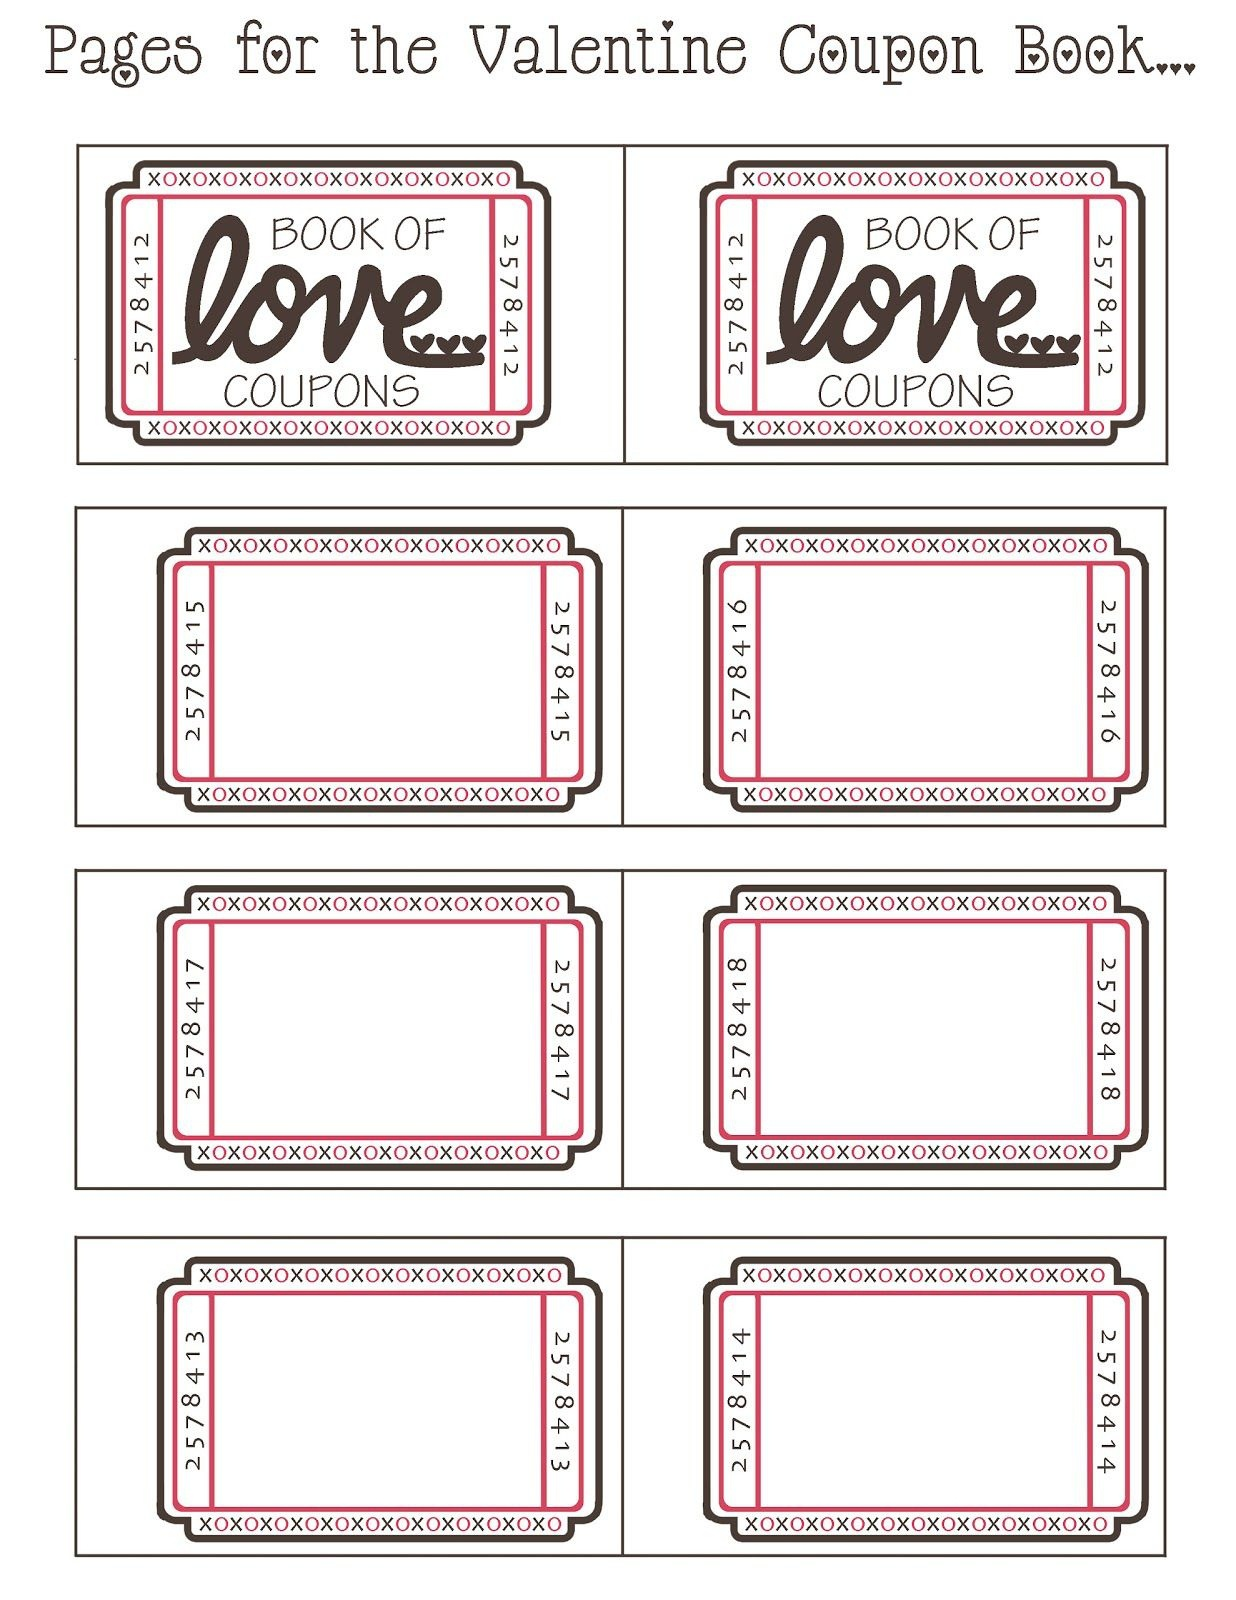 Coupon Book Ideas For Husband. Blank Love Coupon Templates Printable - Free Printable Coupon Templates